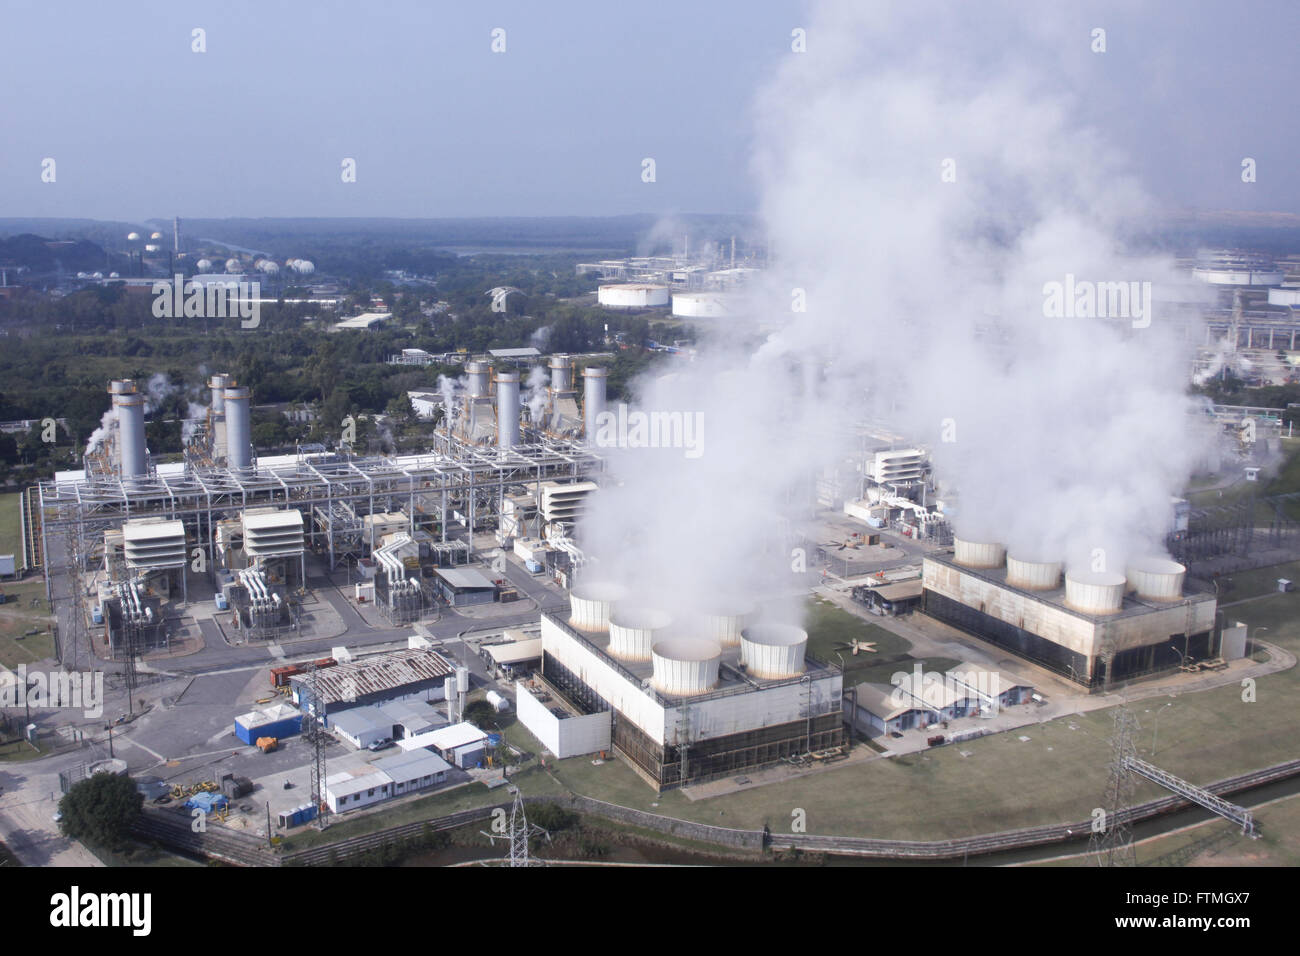 Emission of gases in the industrial region of the city - Stock Image